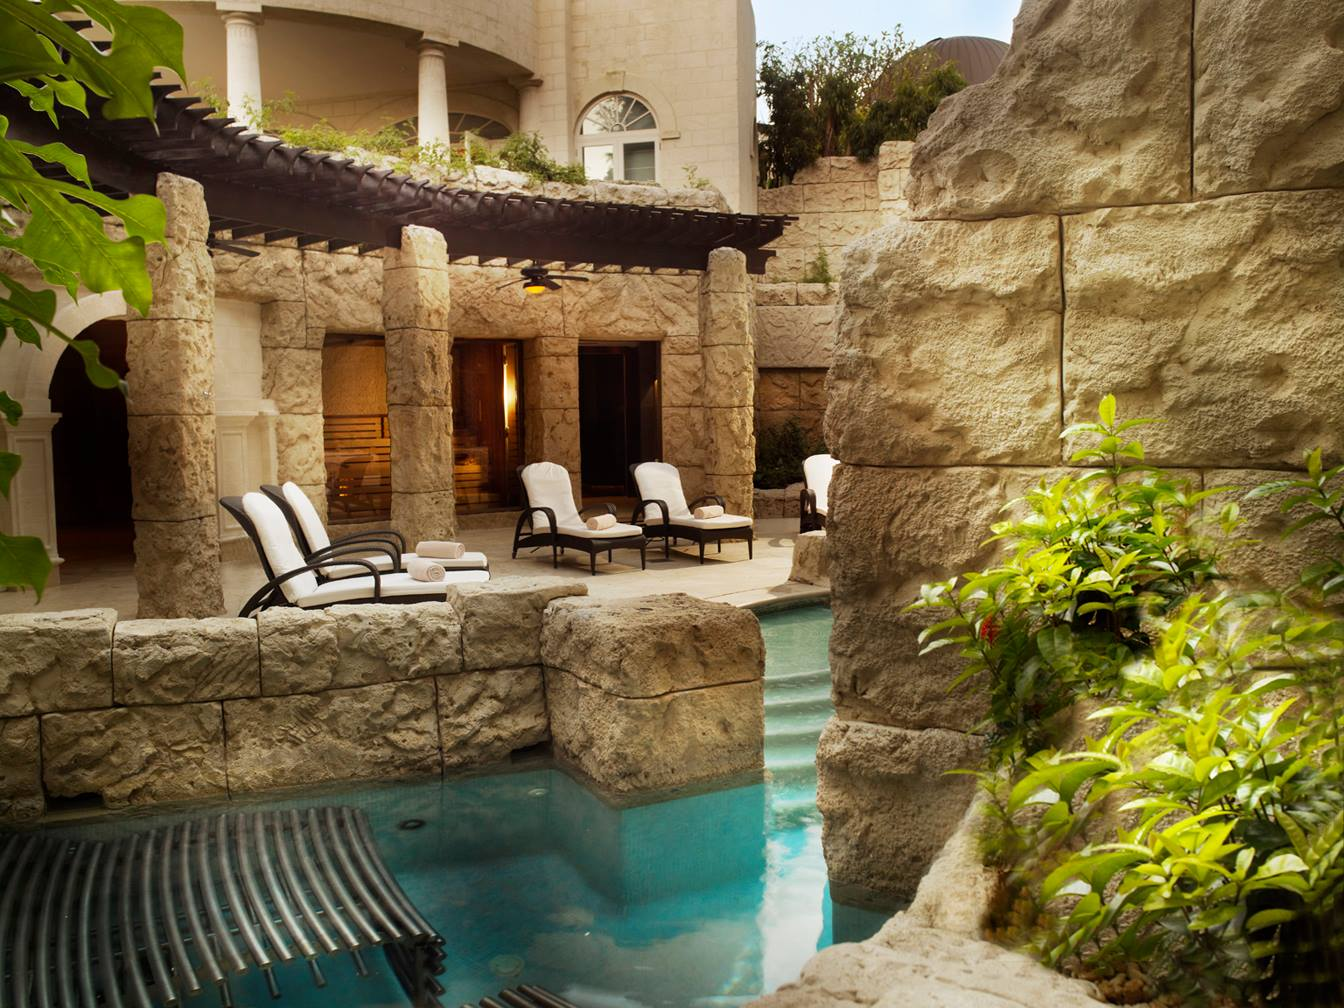 The hydrotherapy pool at the Spa, Sandy Lane.